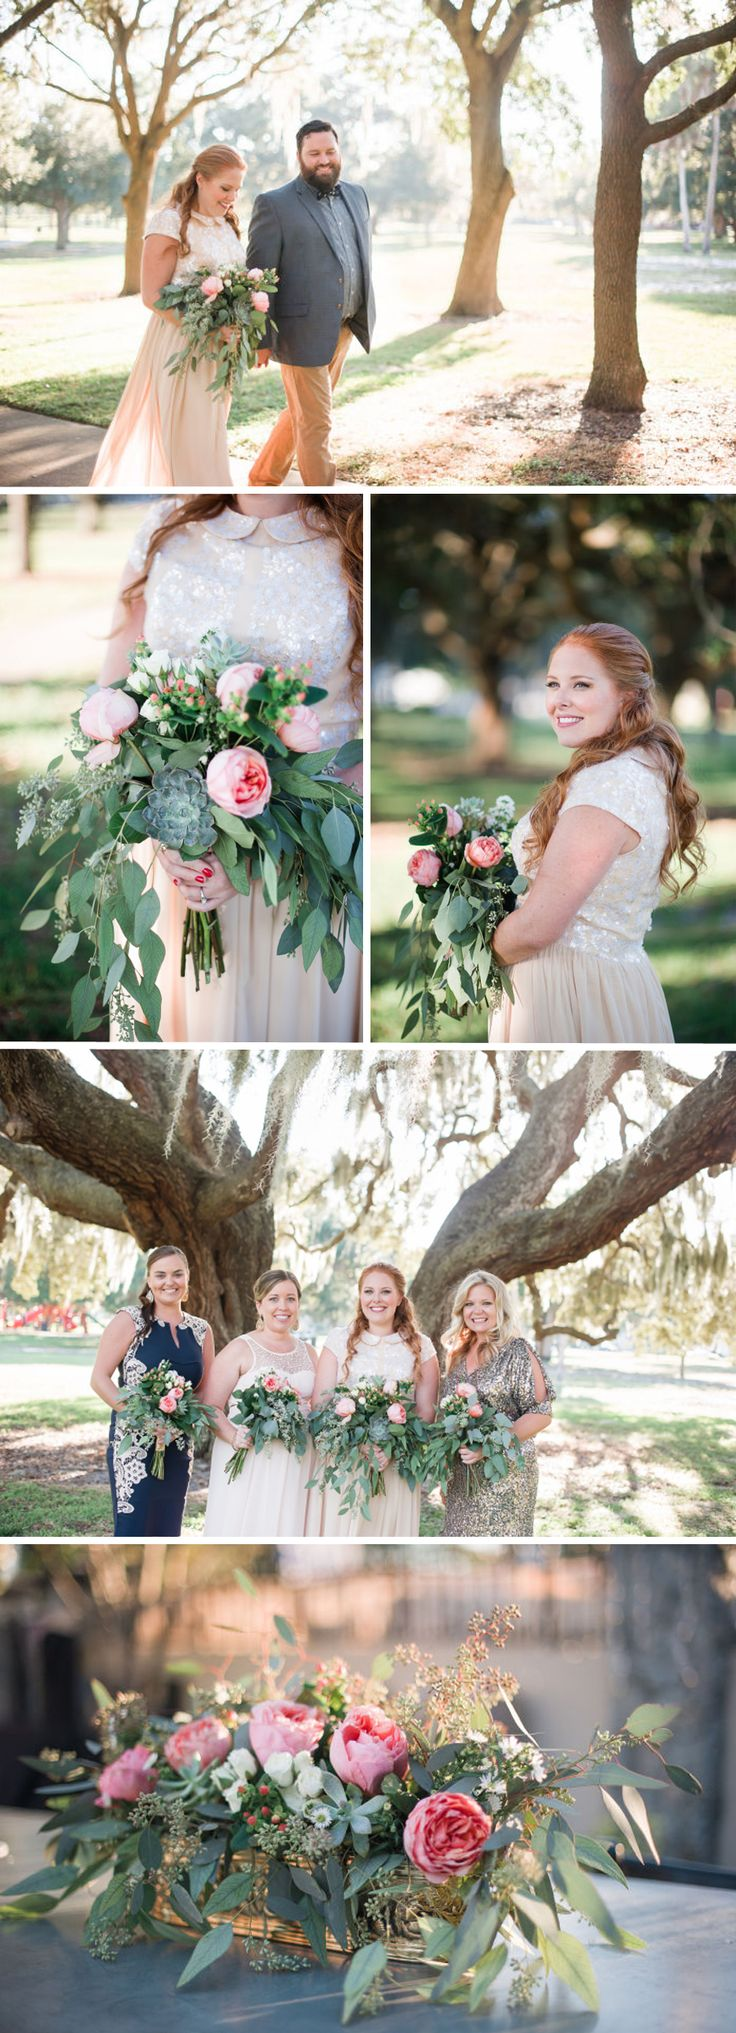 Hayley used wholesale flowers from FiftyFlowers.com to create her Gorgeous DIY Wedding Flowers! #wholesaleflowers #diyweddingflowers #fiftyflowersreview